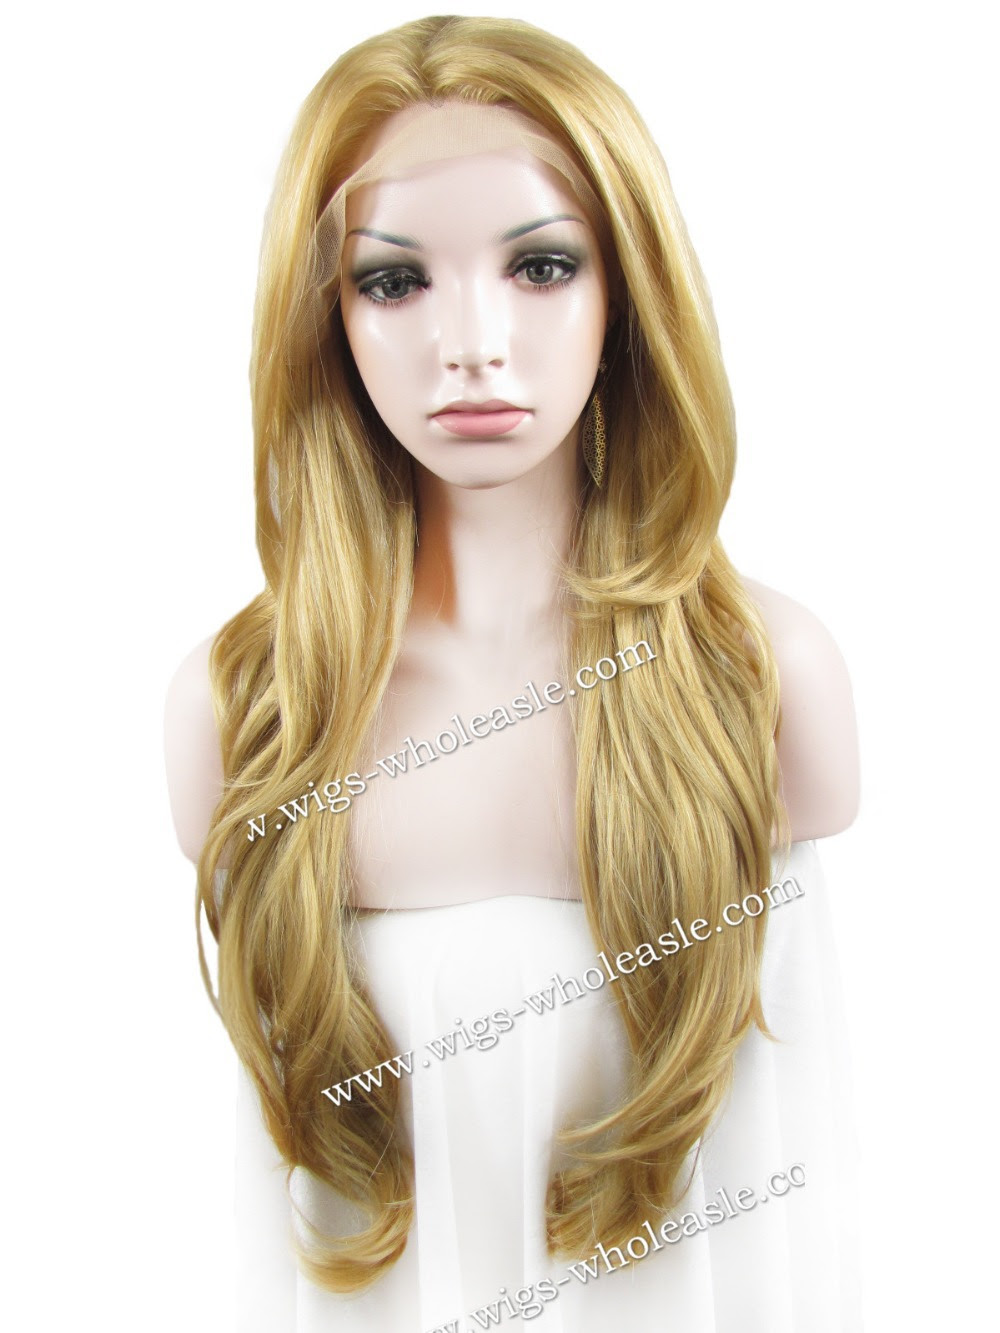 Back 2 blonde hair and beauty supplies